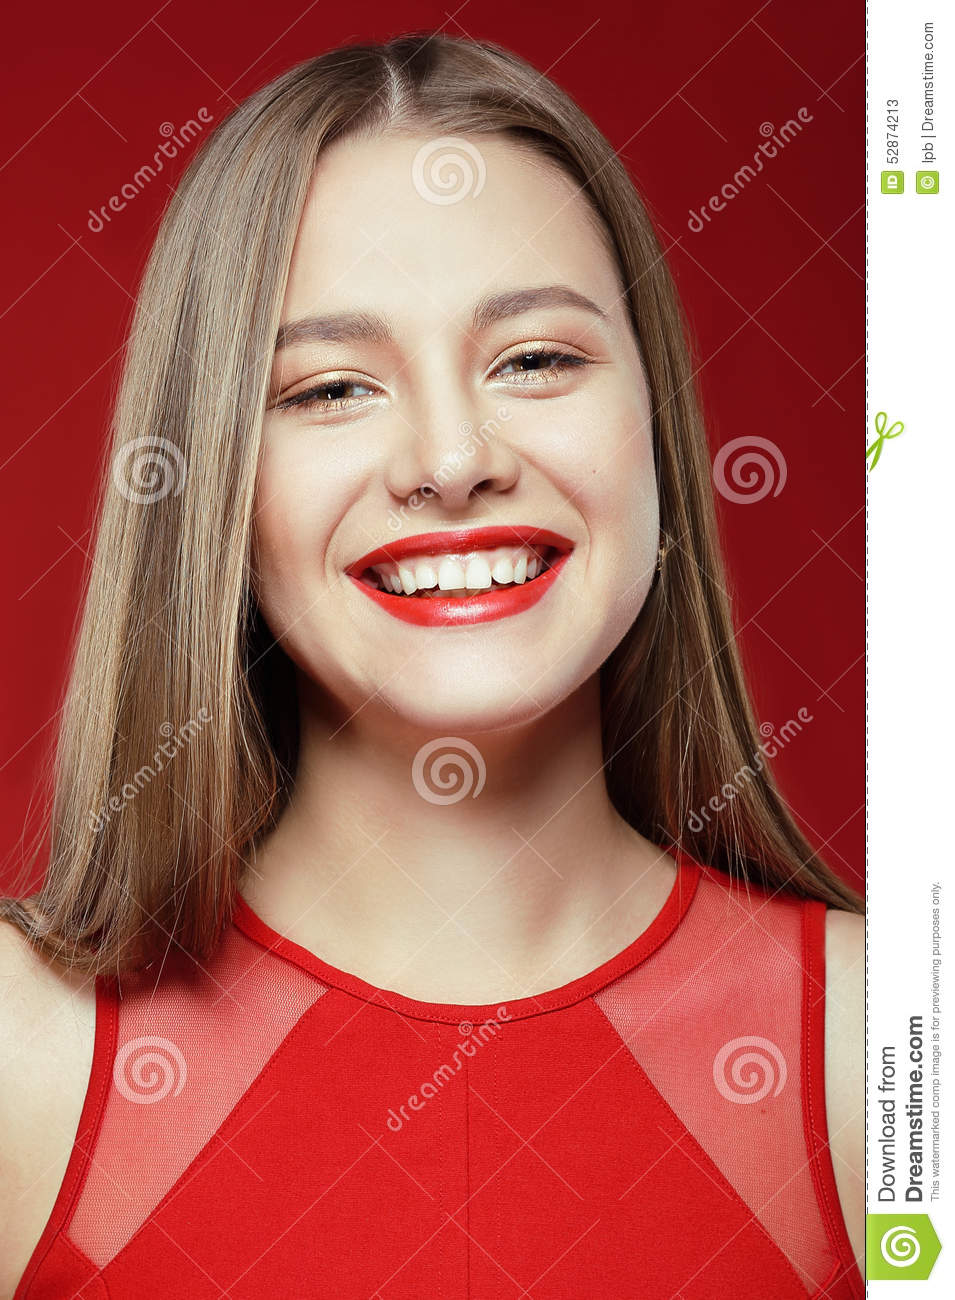 Download Lucky Happy Woman With Toothy Smile Stock Image - Image of glad, lifestyle: 52874213